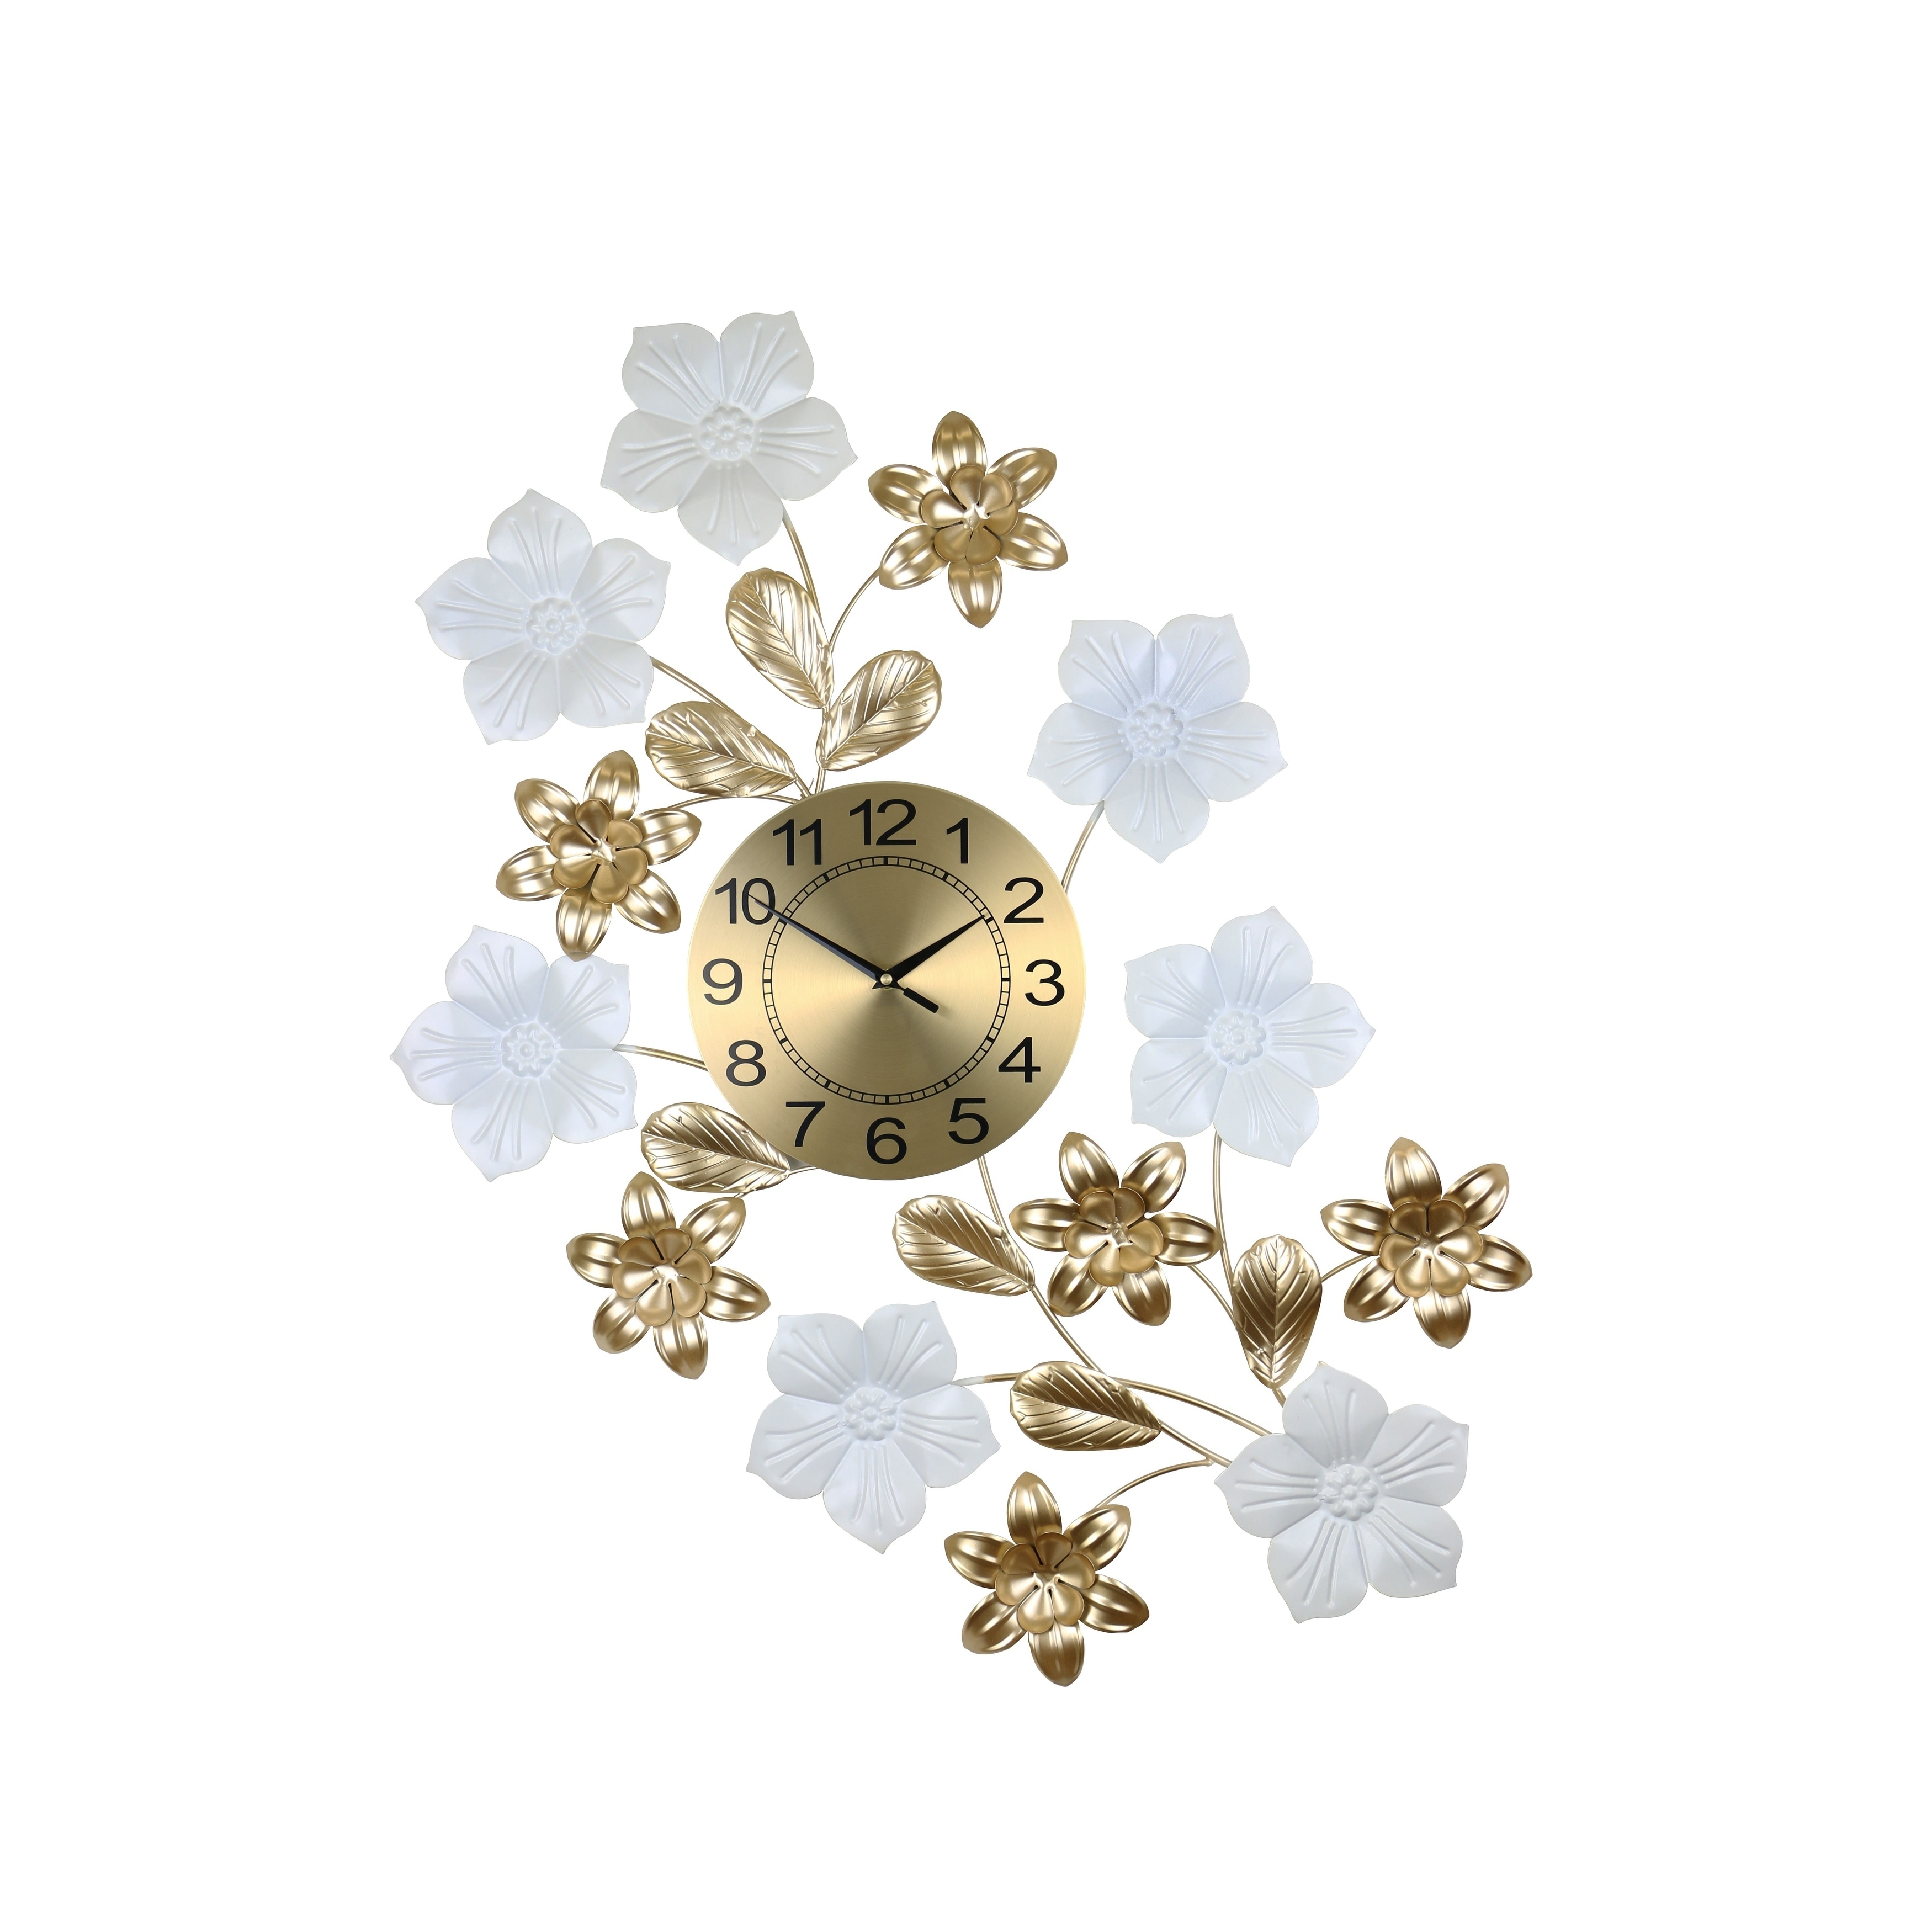 Shop Gold And White Metal Wall Clock With White Flowers 34 X 26